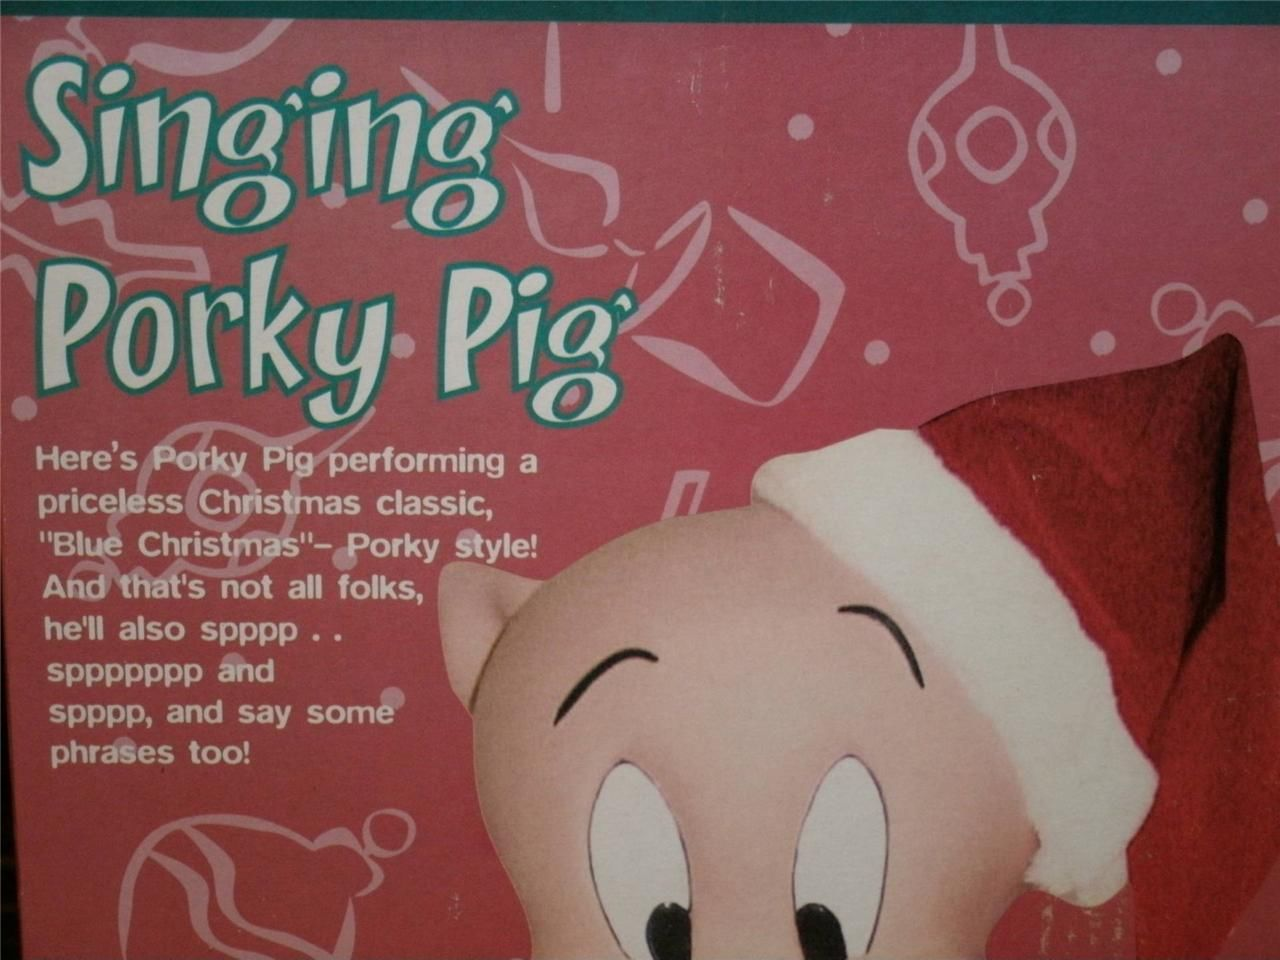 loony tunes animated singing porky pig 2002 awesome holiday decoration 2jpg - Porky Pig Sings Blue Christmas